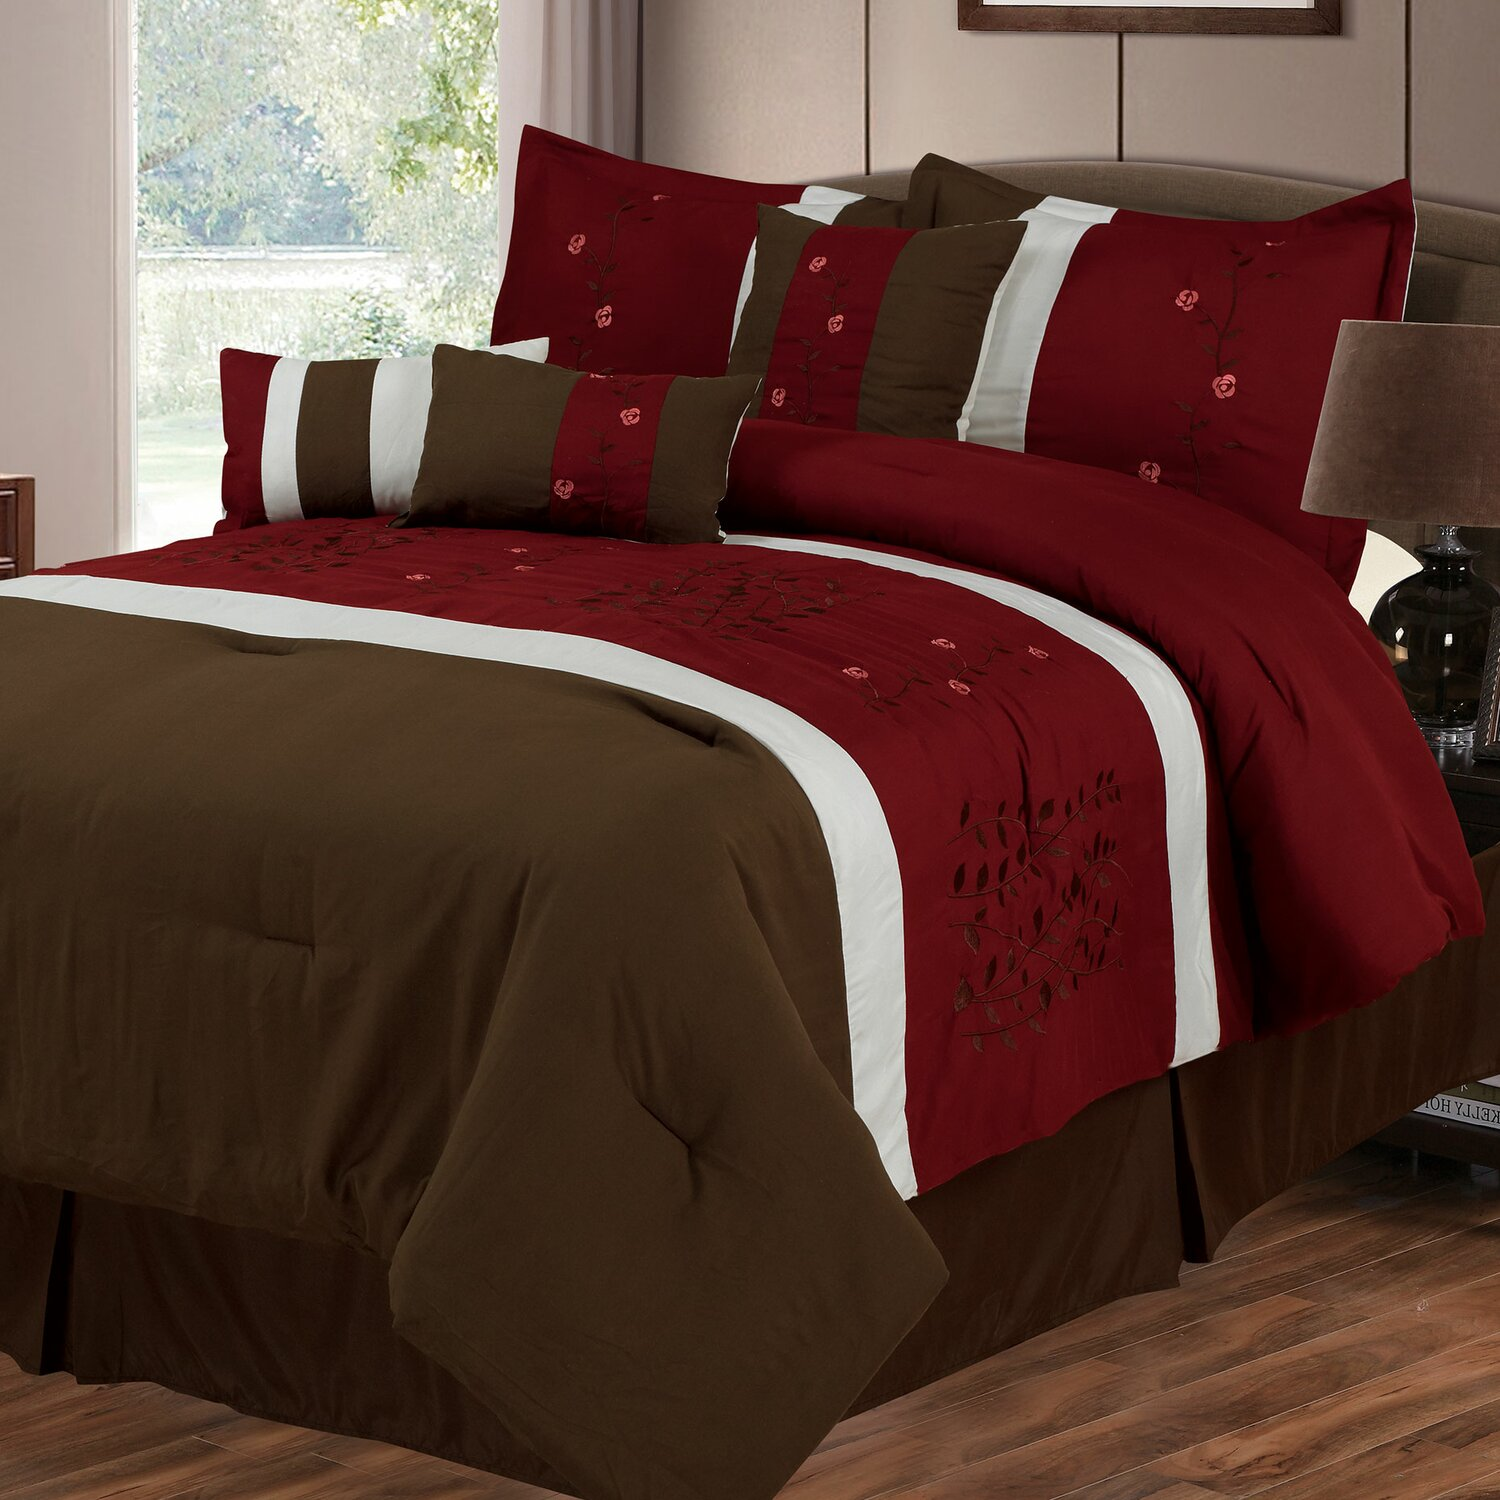 red and brown bedding set